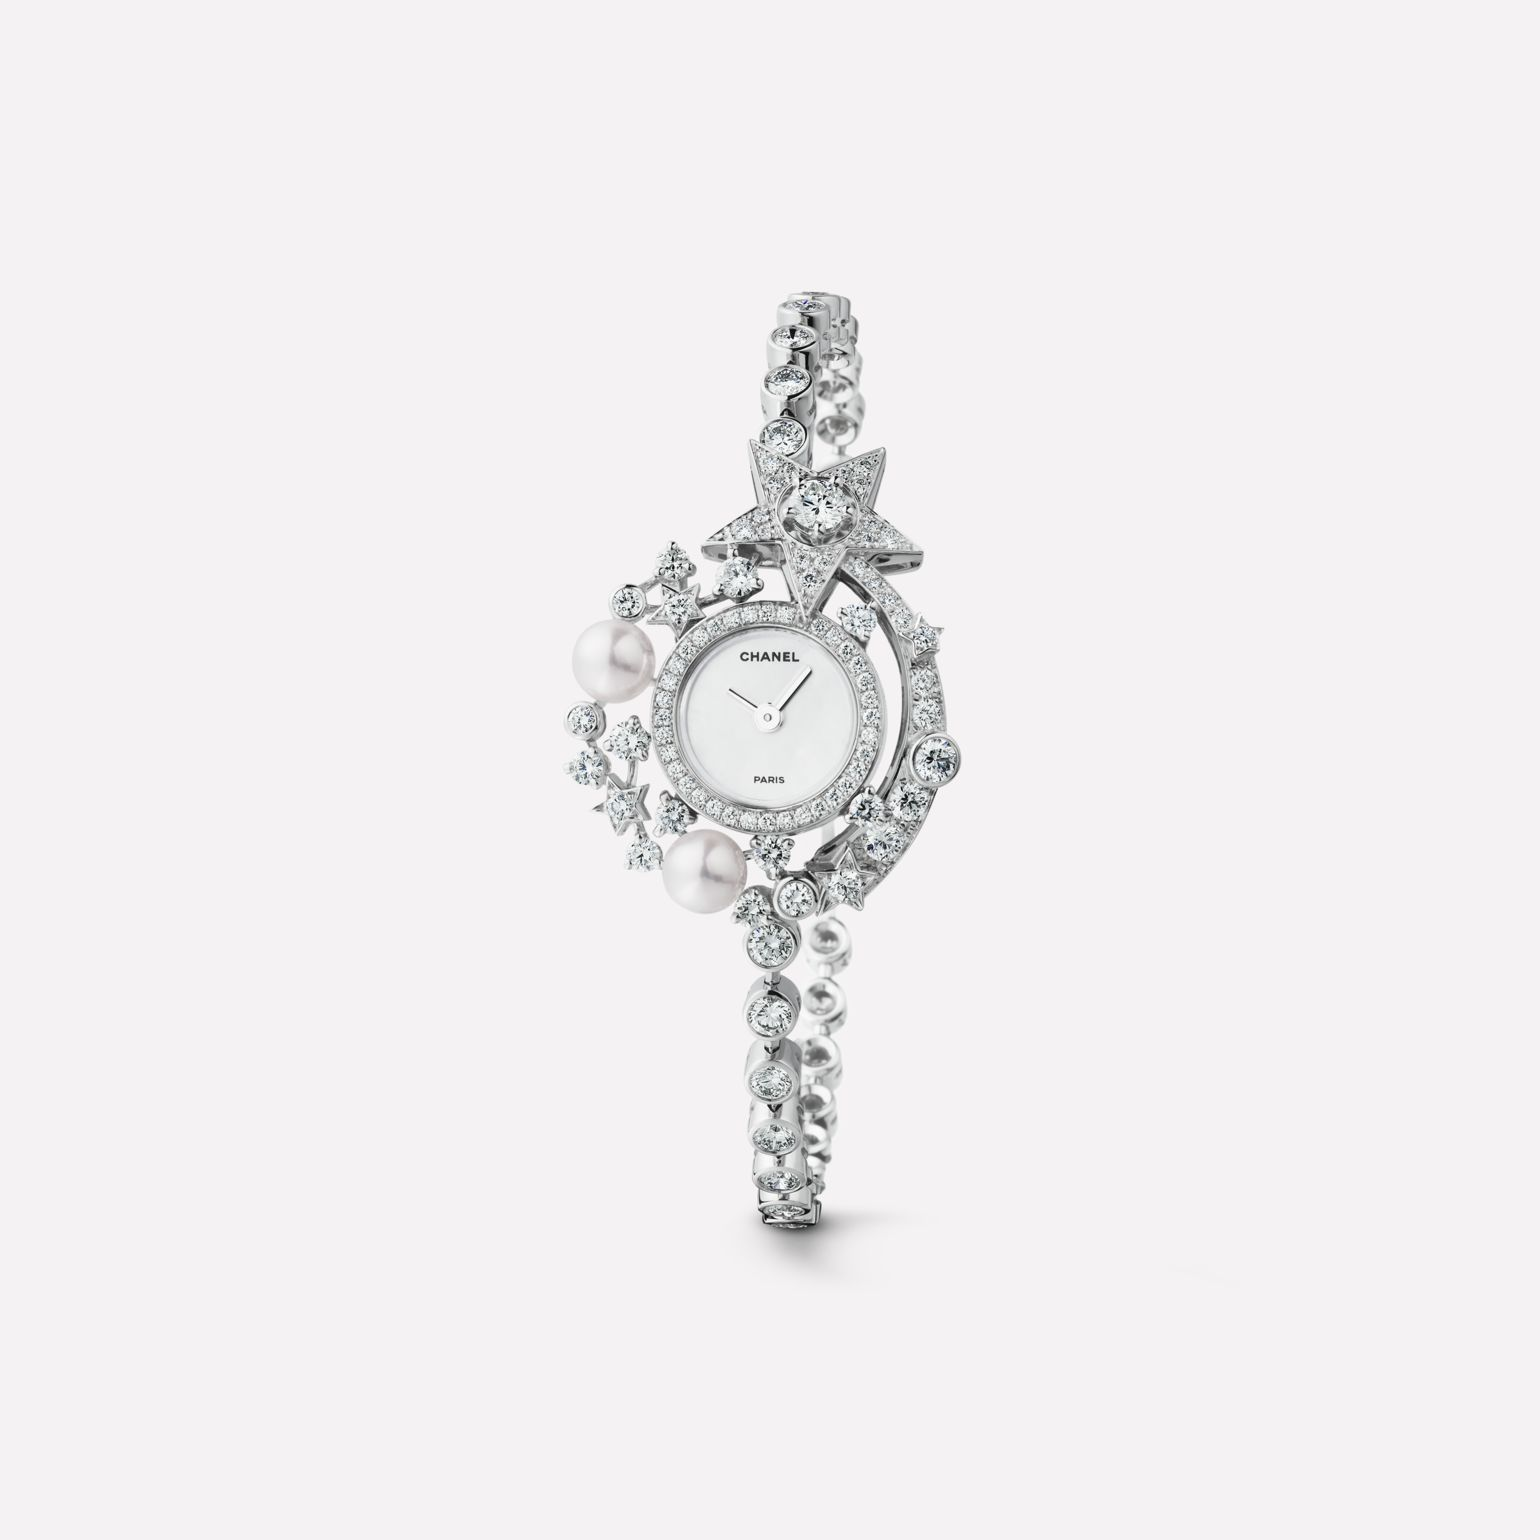 Comète Jewelry Watch Star motif in 18K white gold, cultured pearls, and diamonds